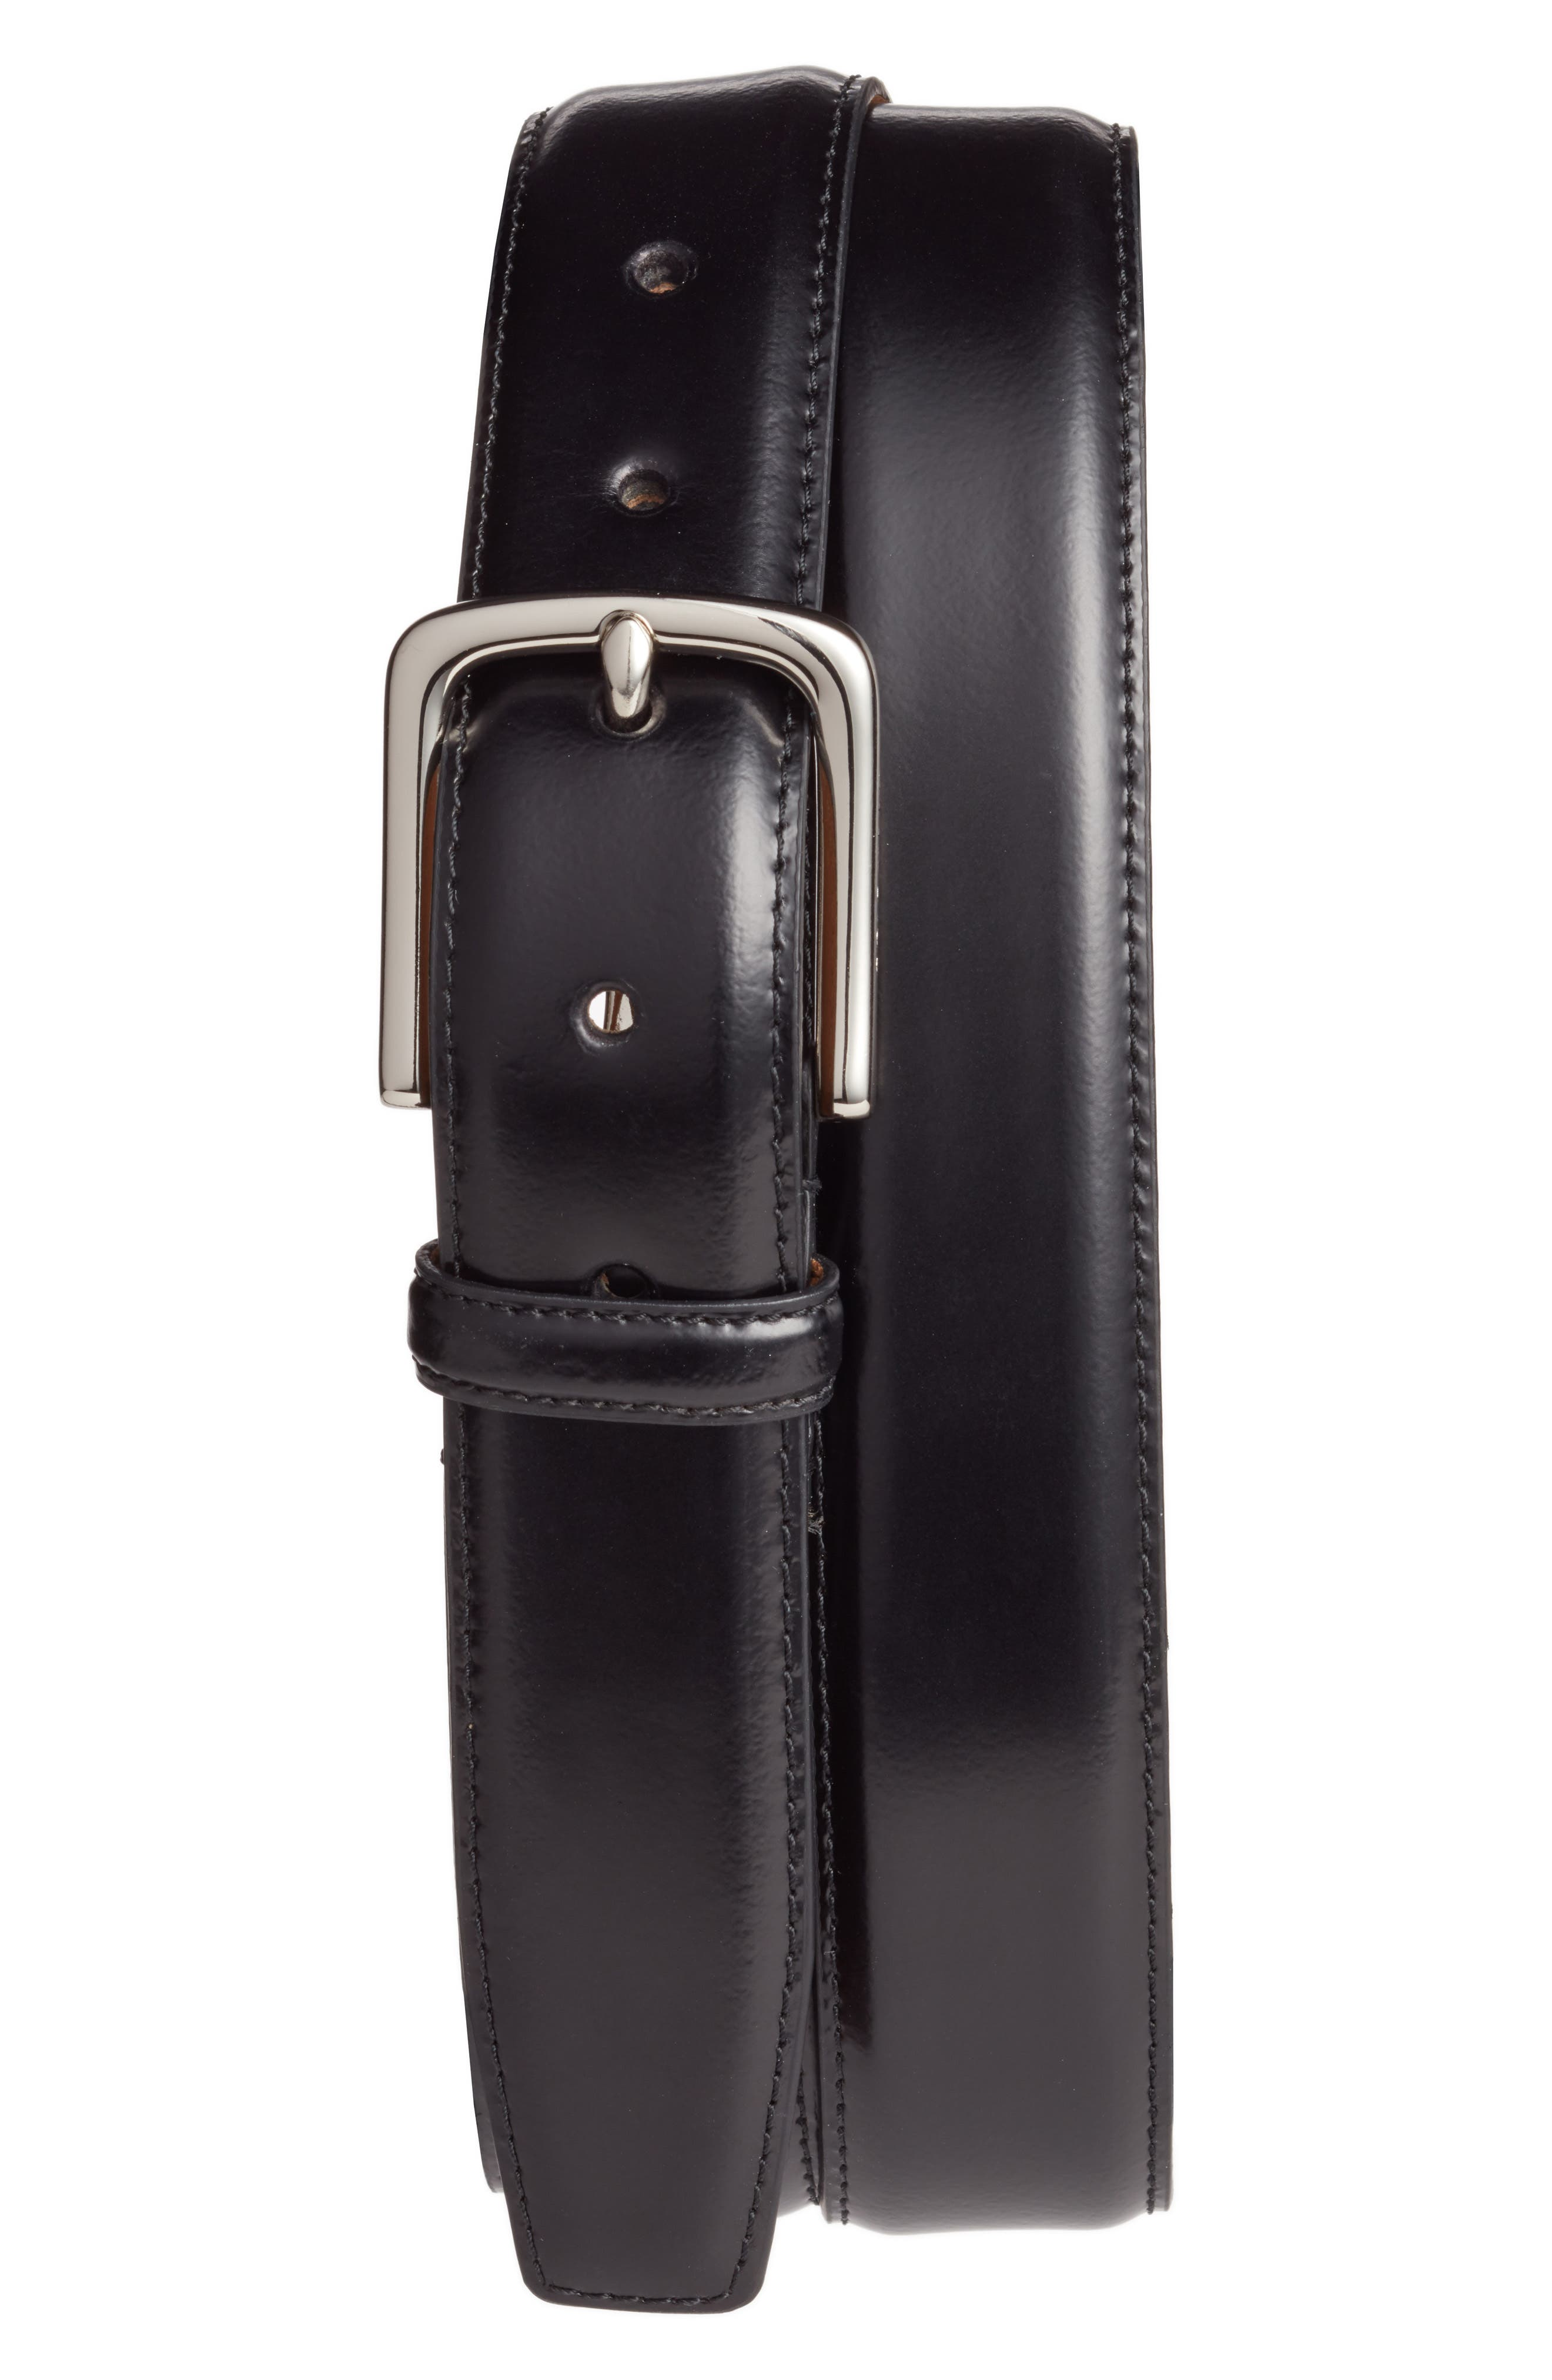 Cole Haan Leather Belt, Black With Polished Nickel